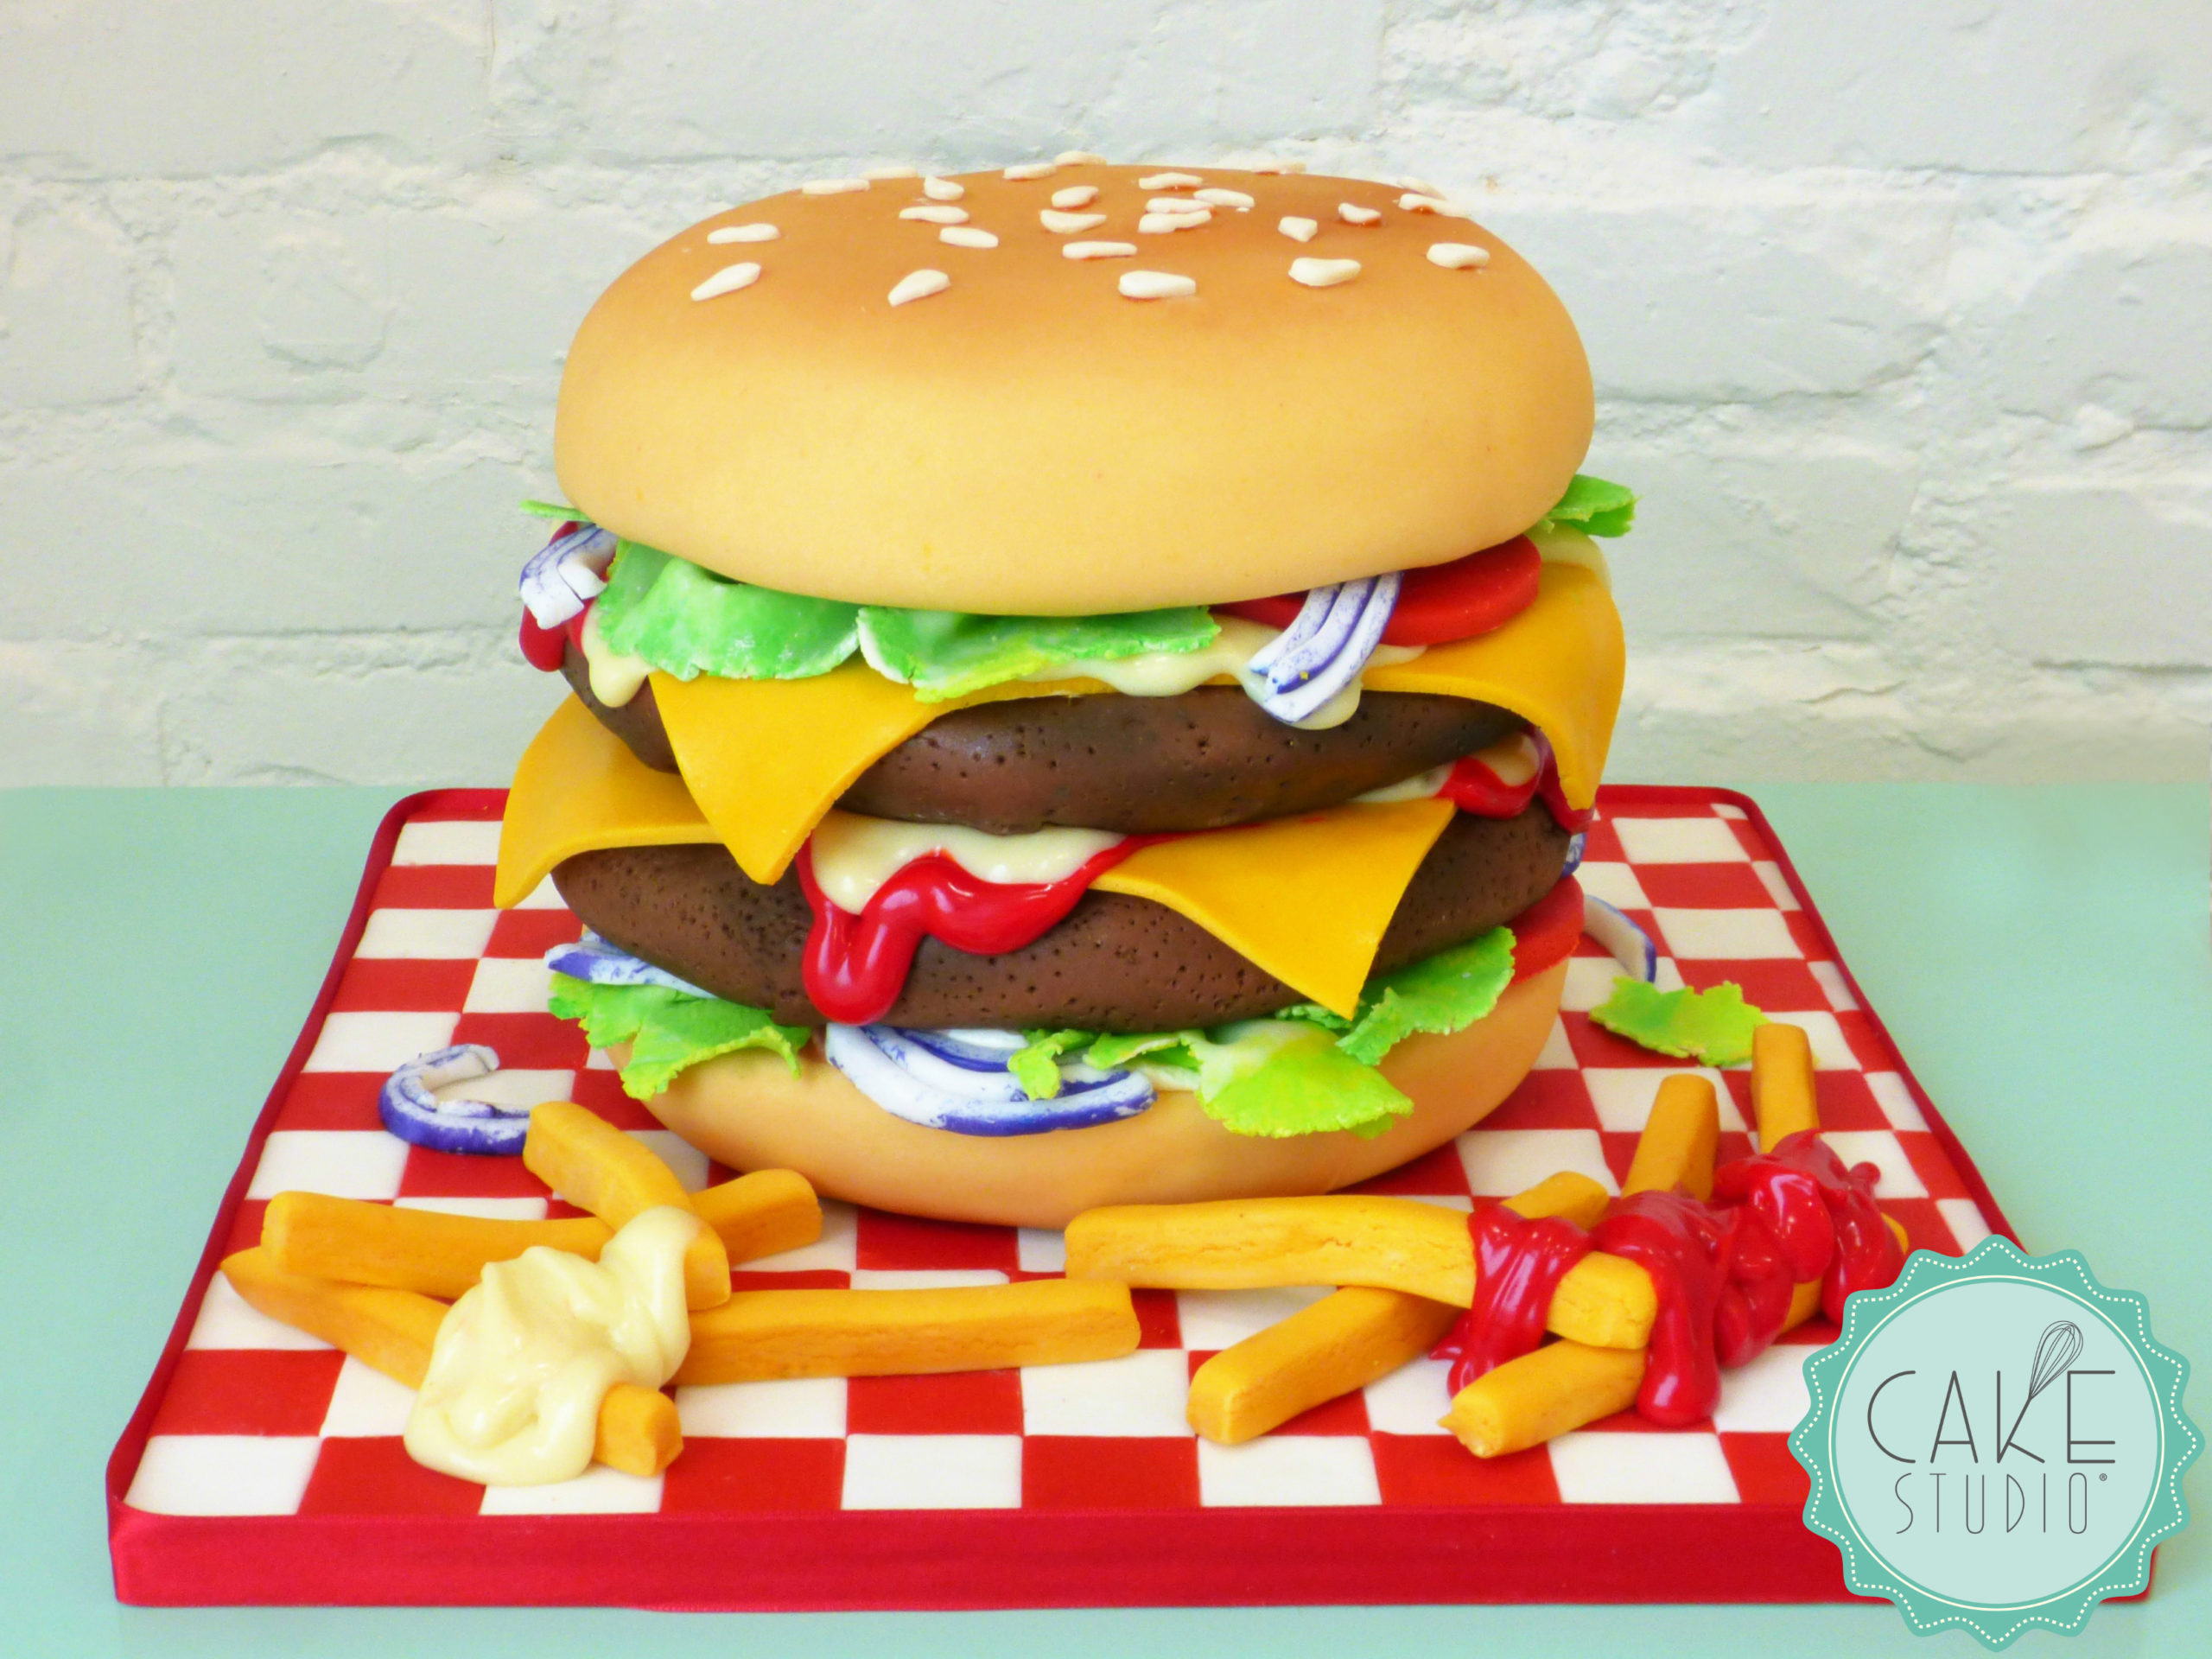 torta compleanno cheeseburger patatine maionese ketchup